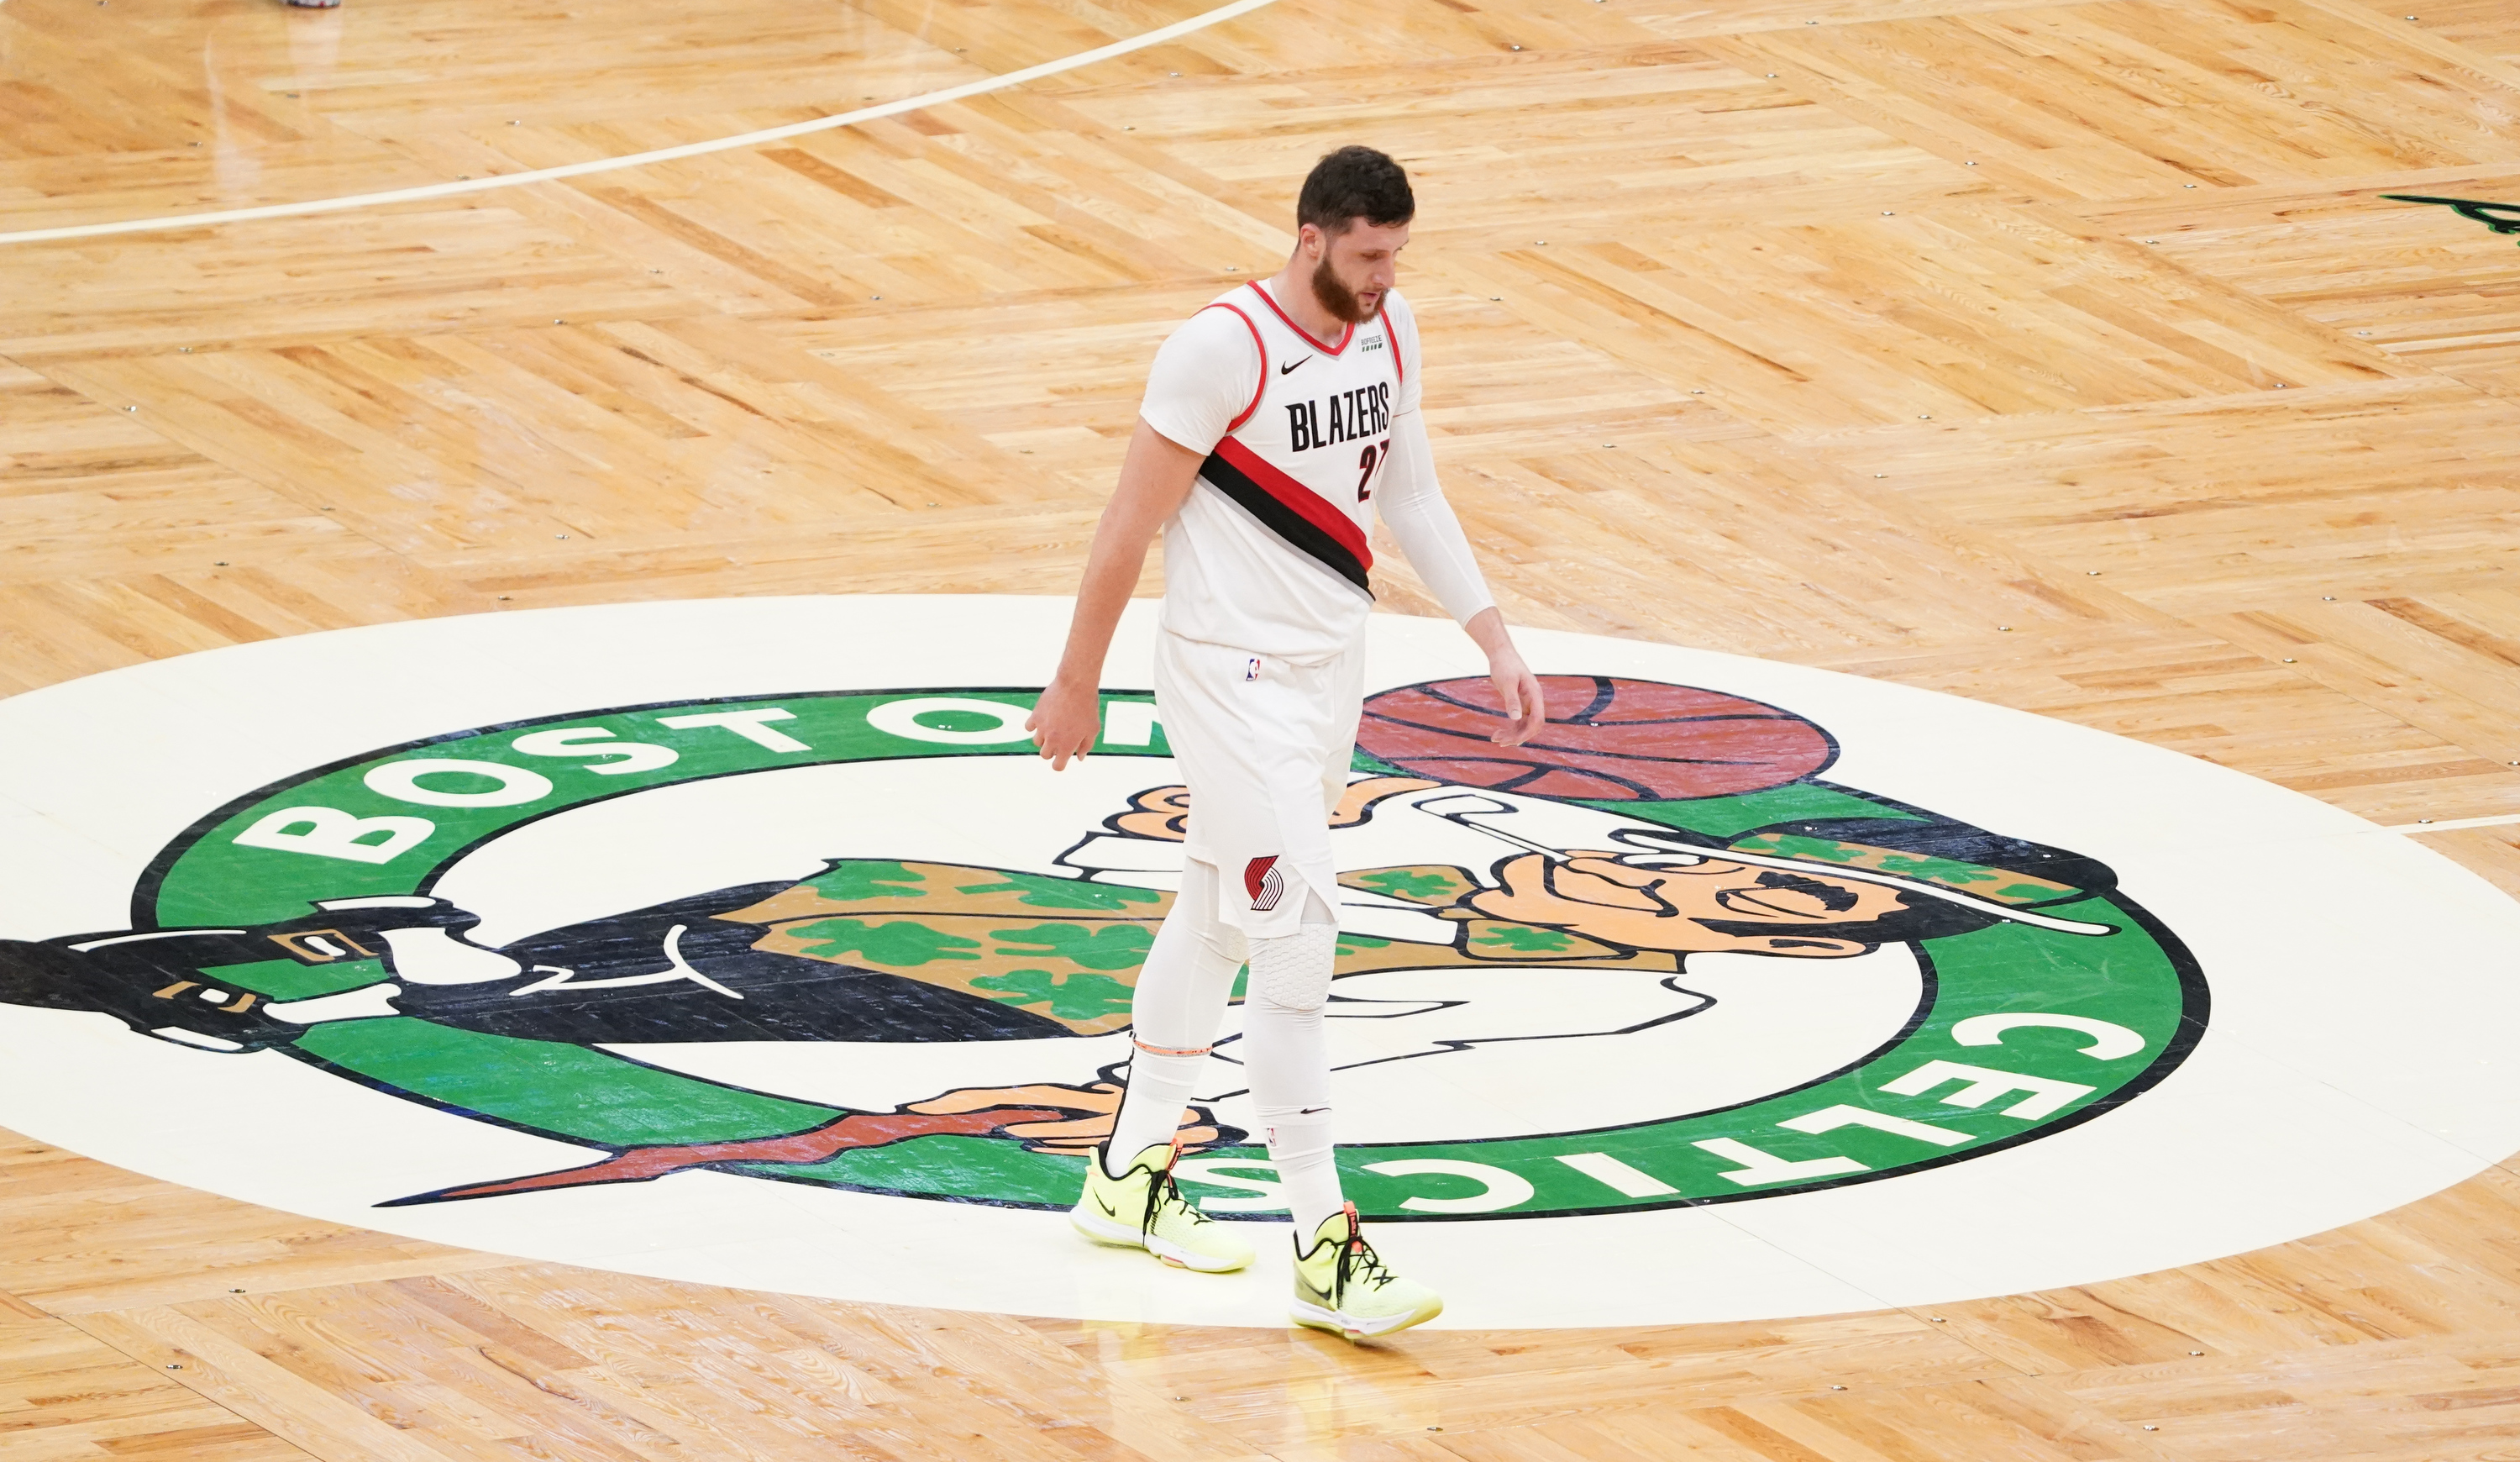 Portland Trail Blazers center Jusuf Nurkic returns up court as they take on the Boston Celtics in the second quarter at TD Garden.